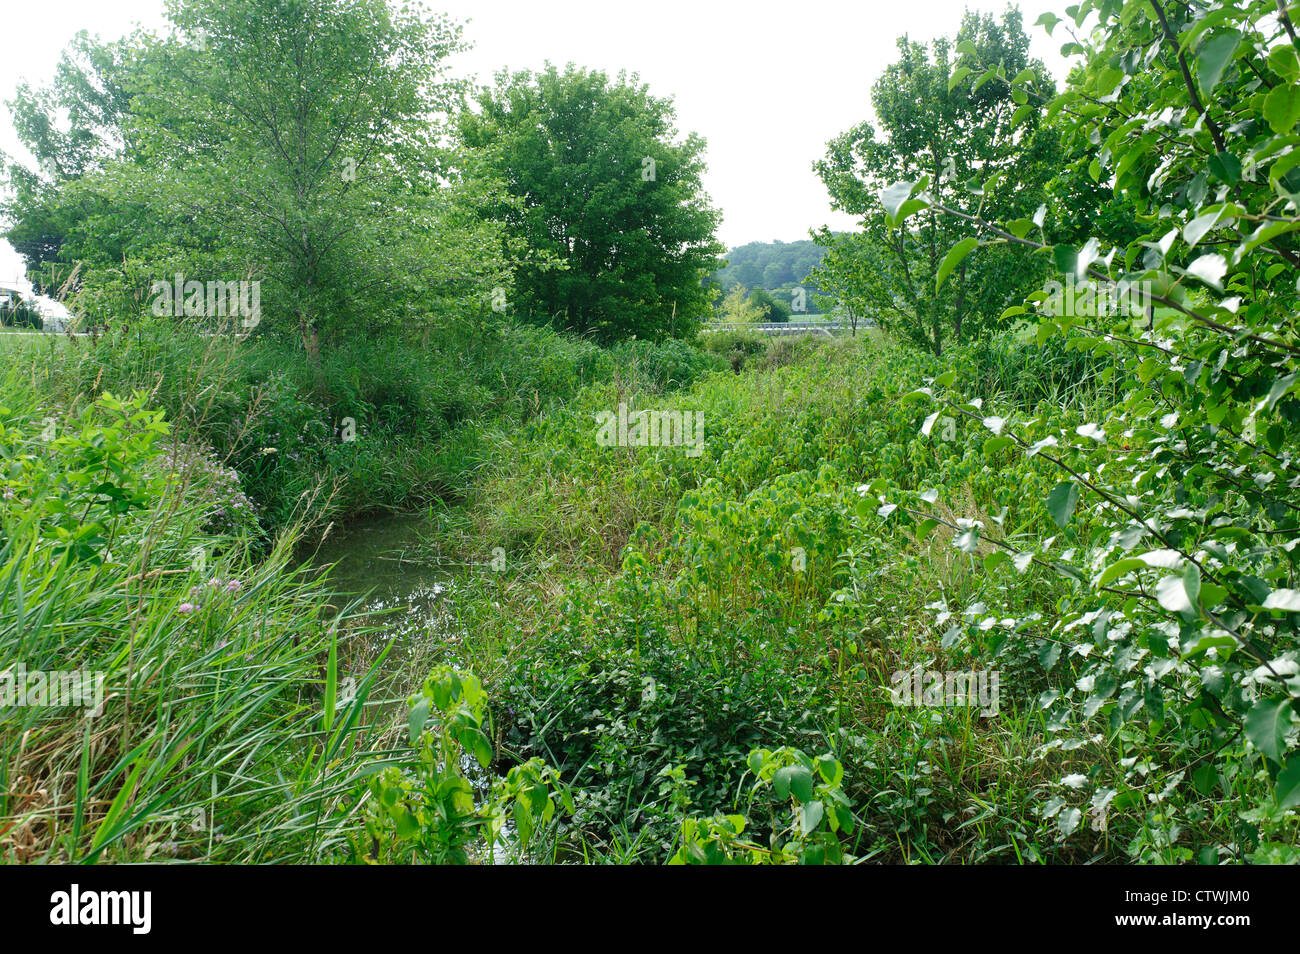 RIPARIAN BUFFER GROWTH AND STREAM SIDE FENCING ALONG BANKS OF SWARR RUN LANCASTER, PENNSYLVANIA - Stock Image